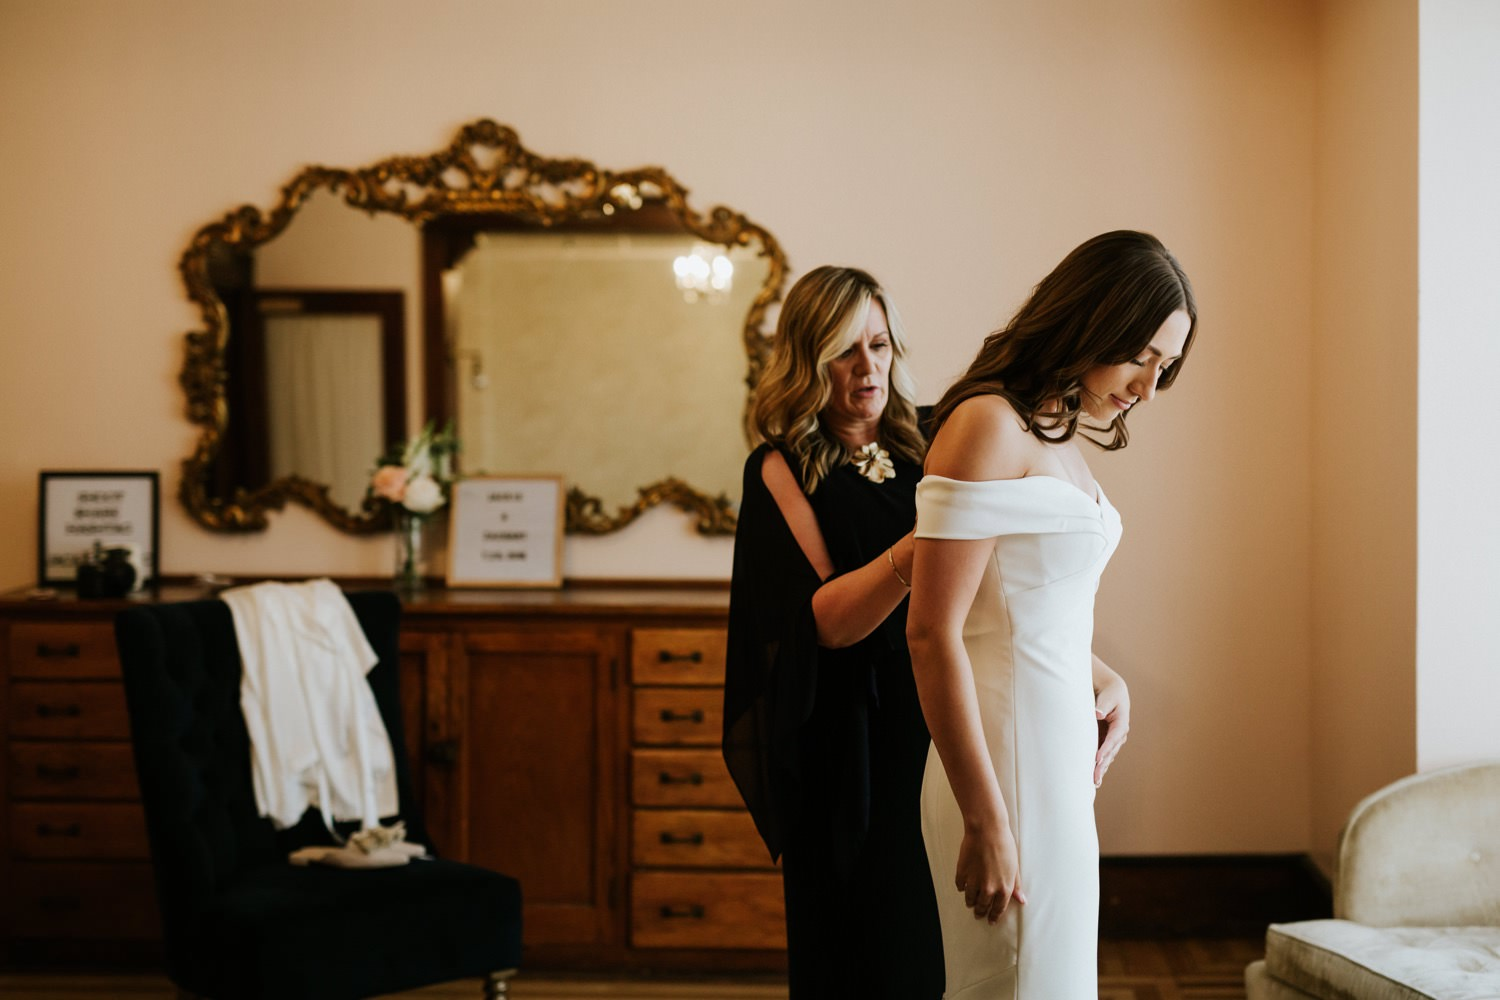 Mother of the bride helps the bride put on her dress at the Haight in Elgin